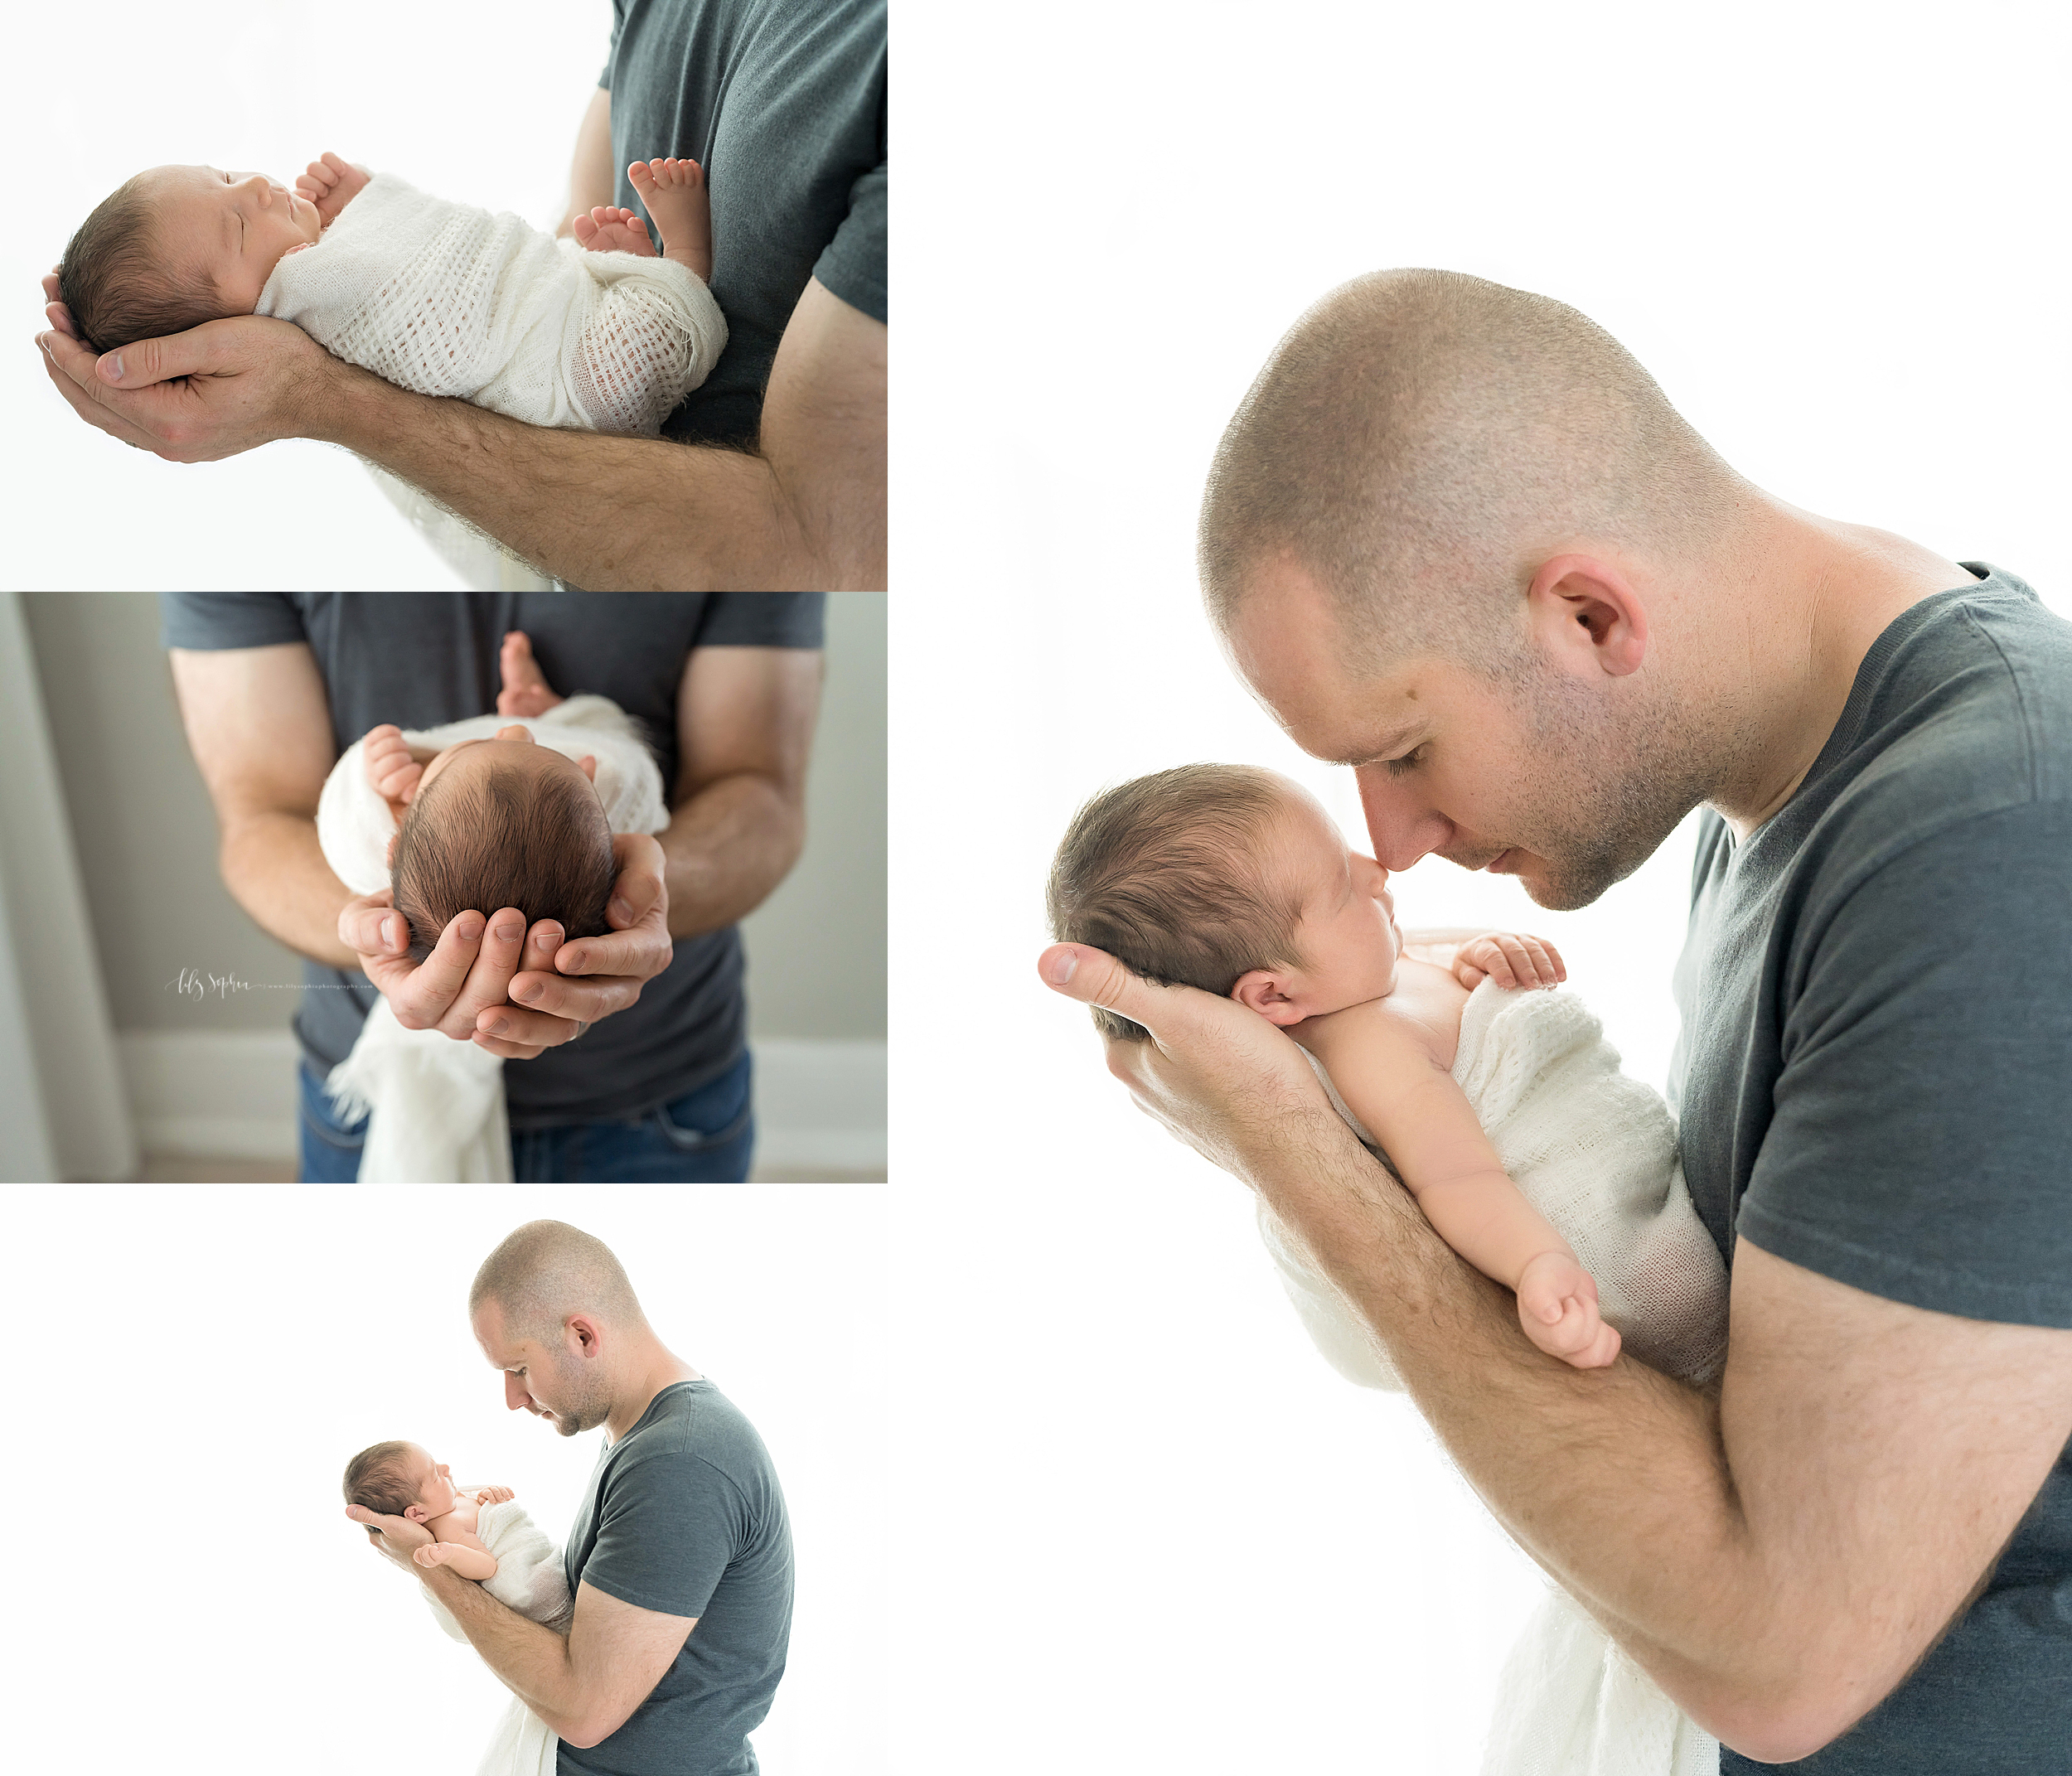 atlanta-cumming-alpharetta-brookhaven-virginia-highlands-smyrna-decatur-lily-sophia-photography-studio-newborn-session-toddler-big-sister-baby-boy-family-pictures_0777.jpg